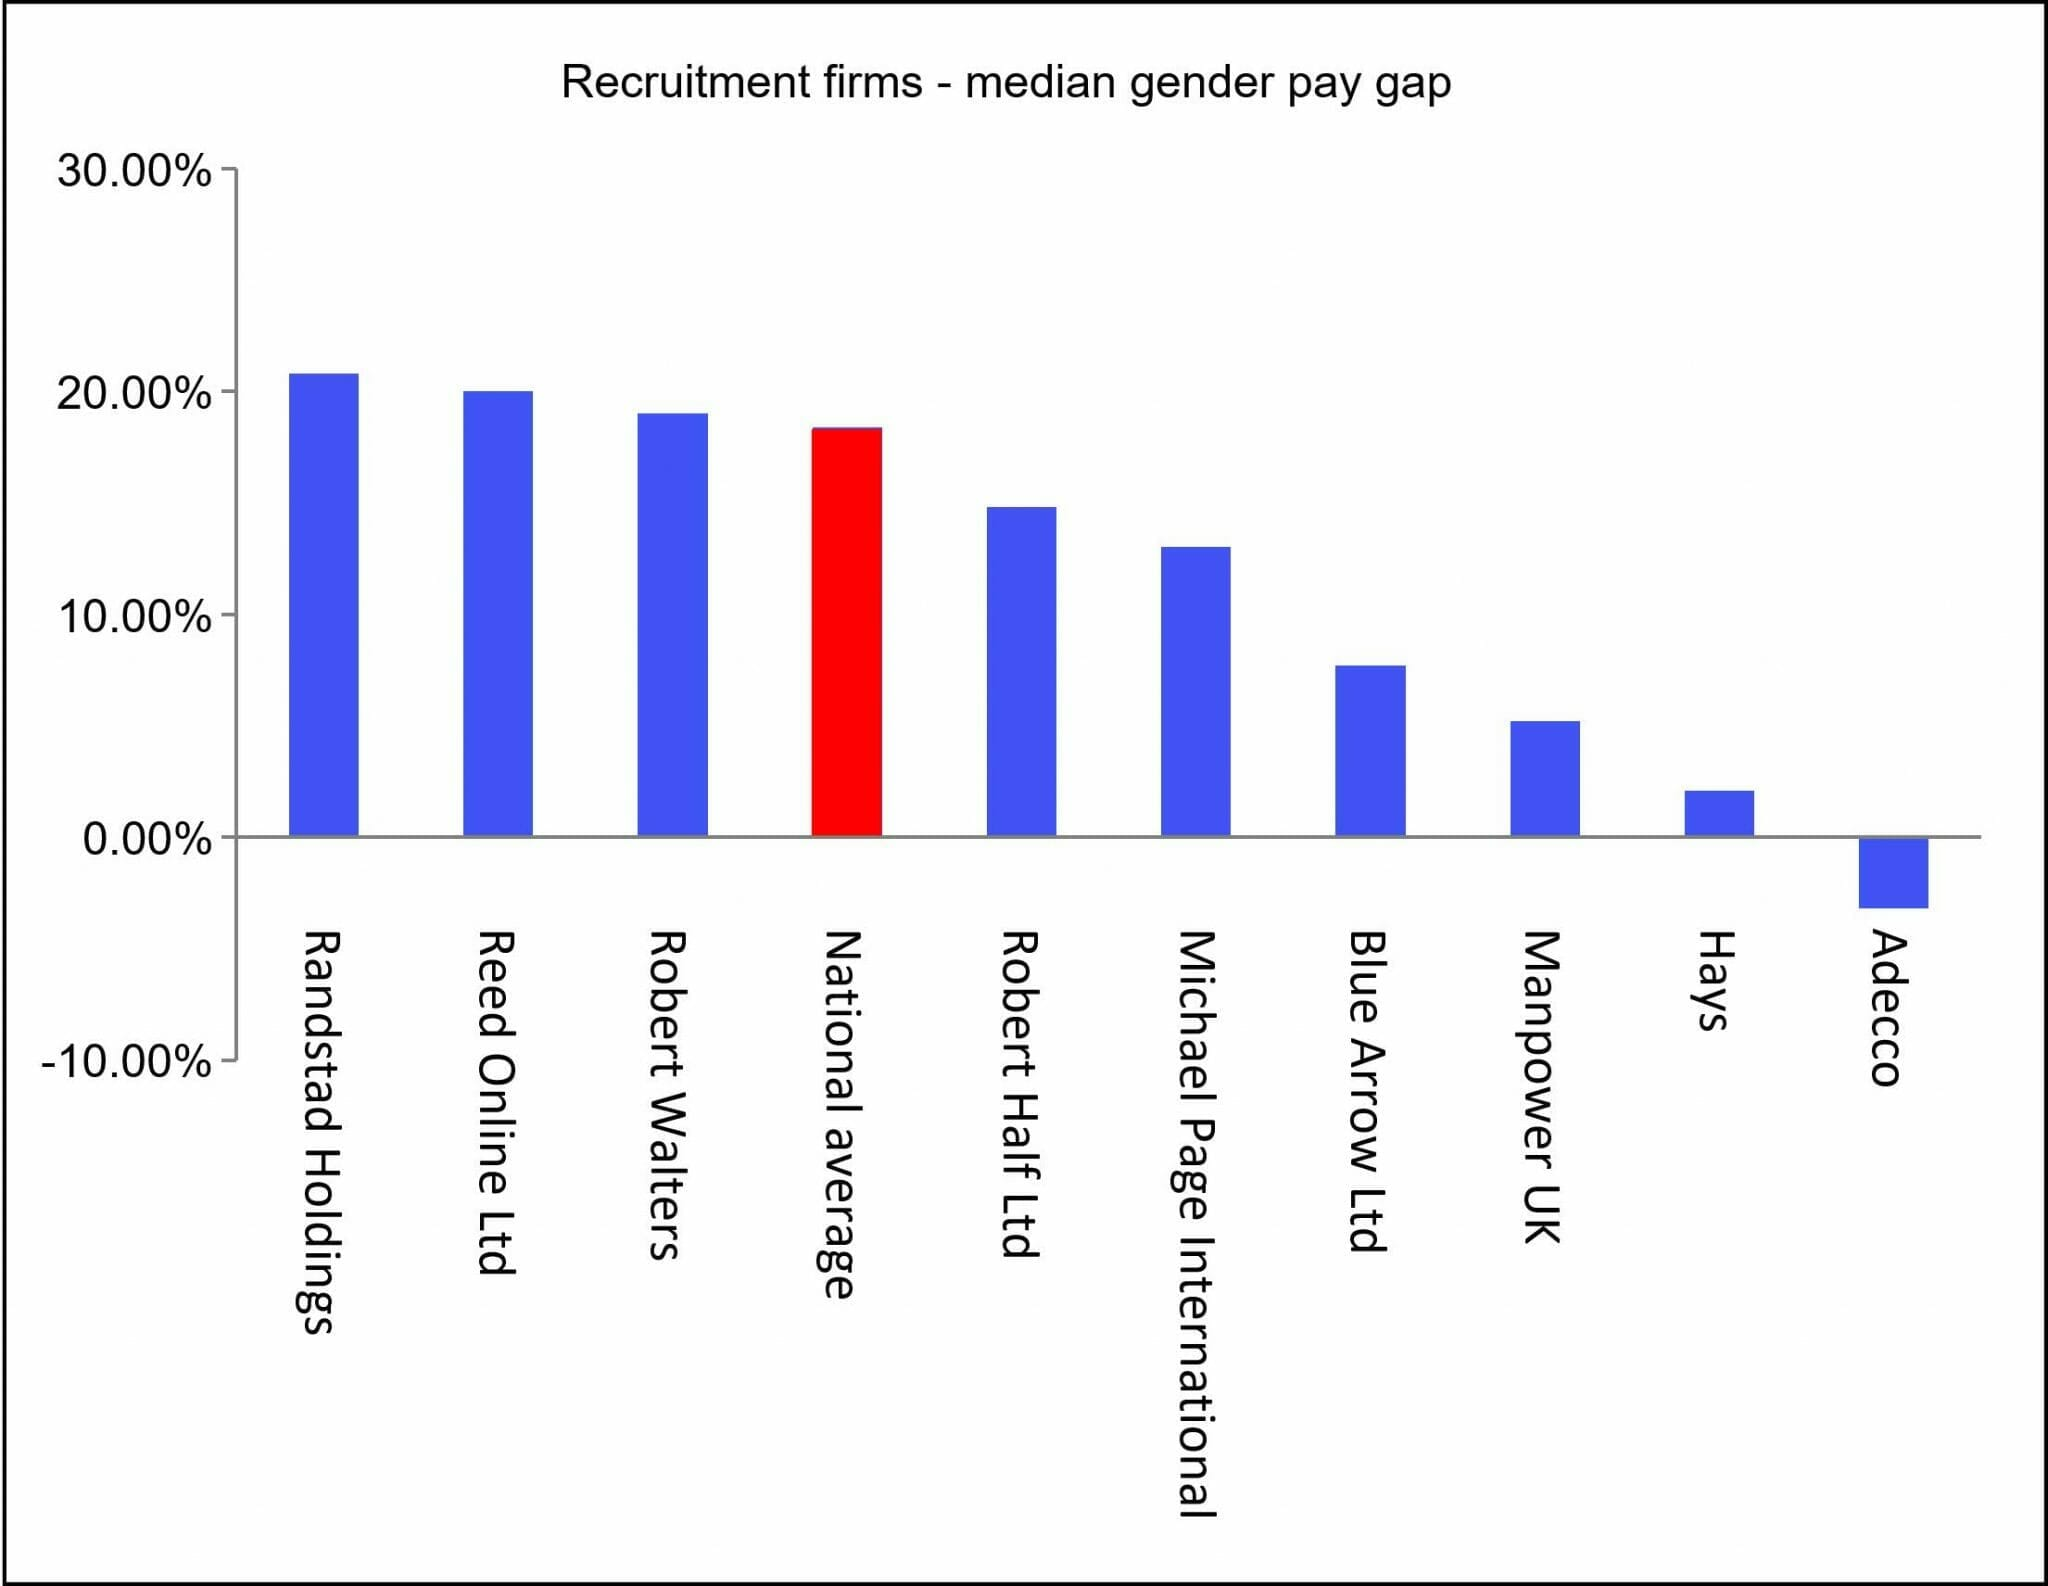 Gender pay gap - recruitment industry